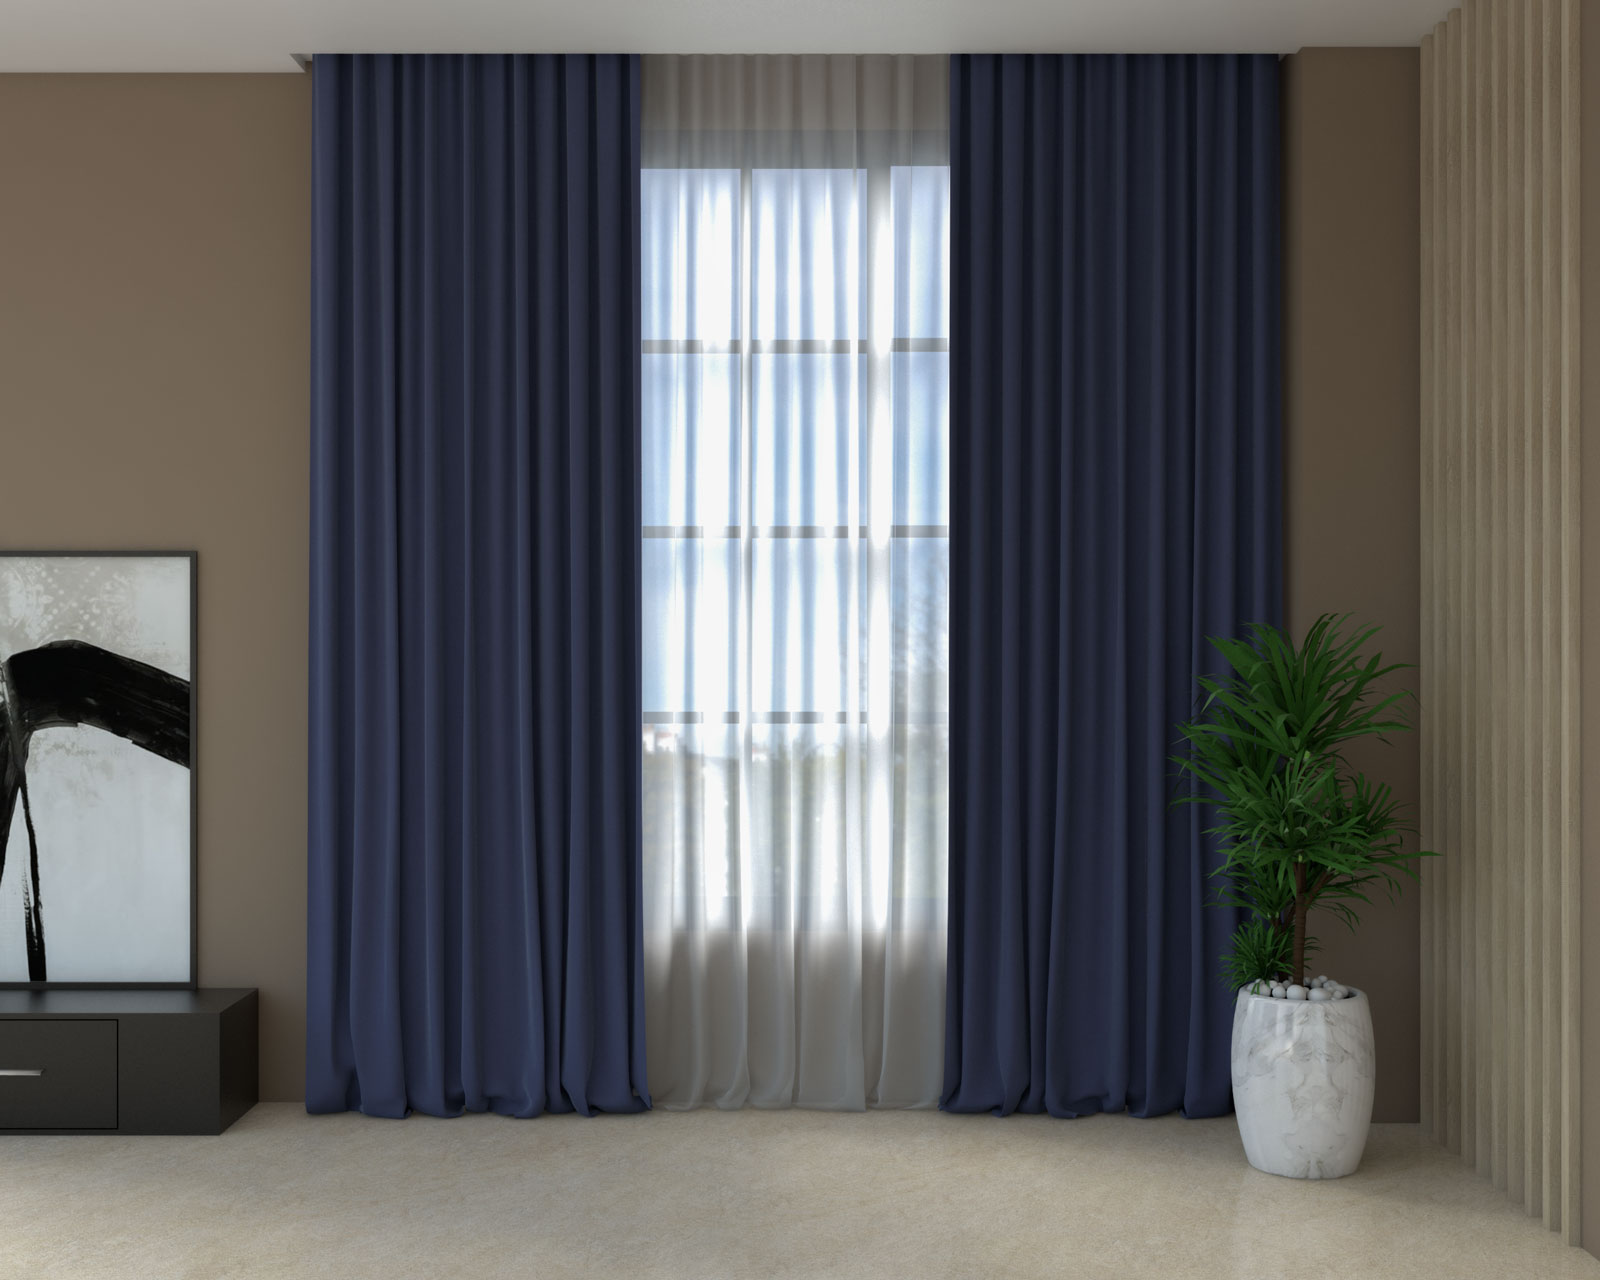 Midnight blue curtains with brown walls